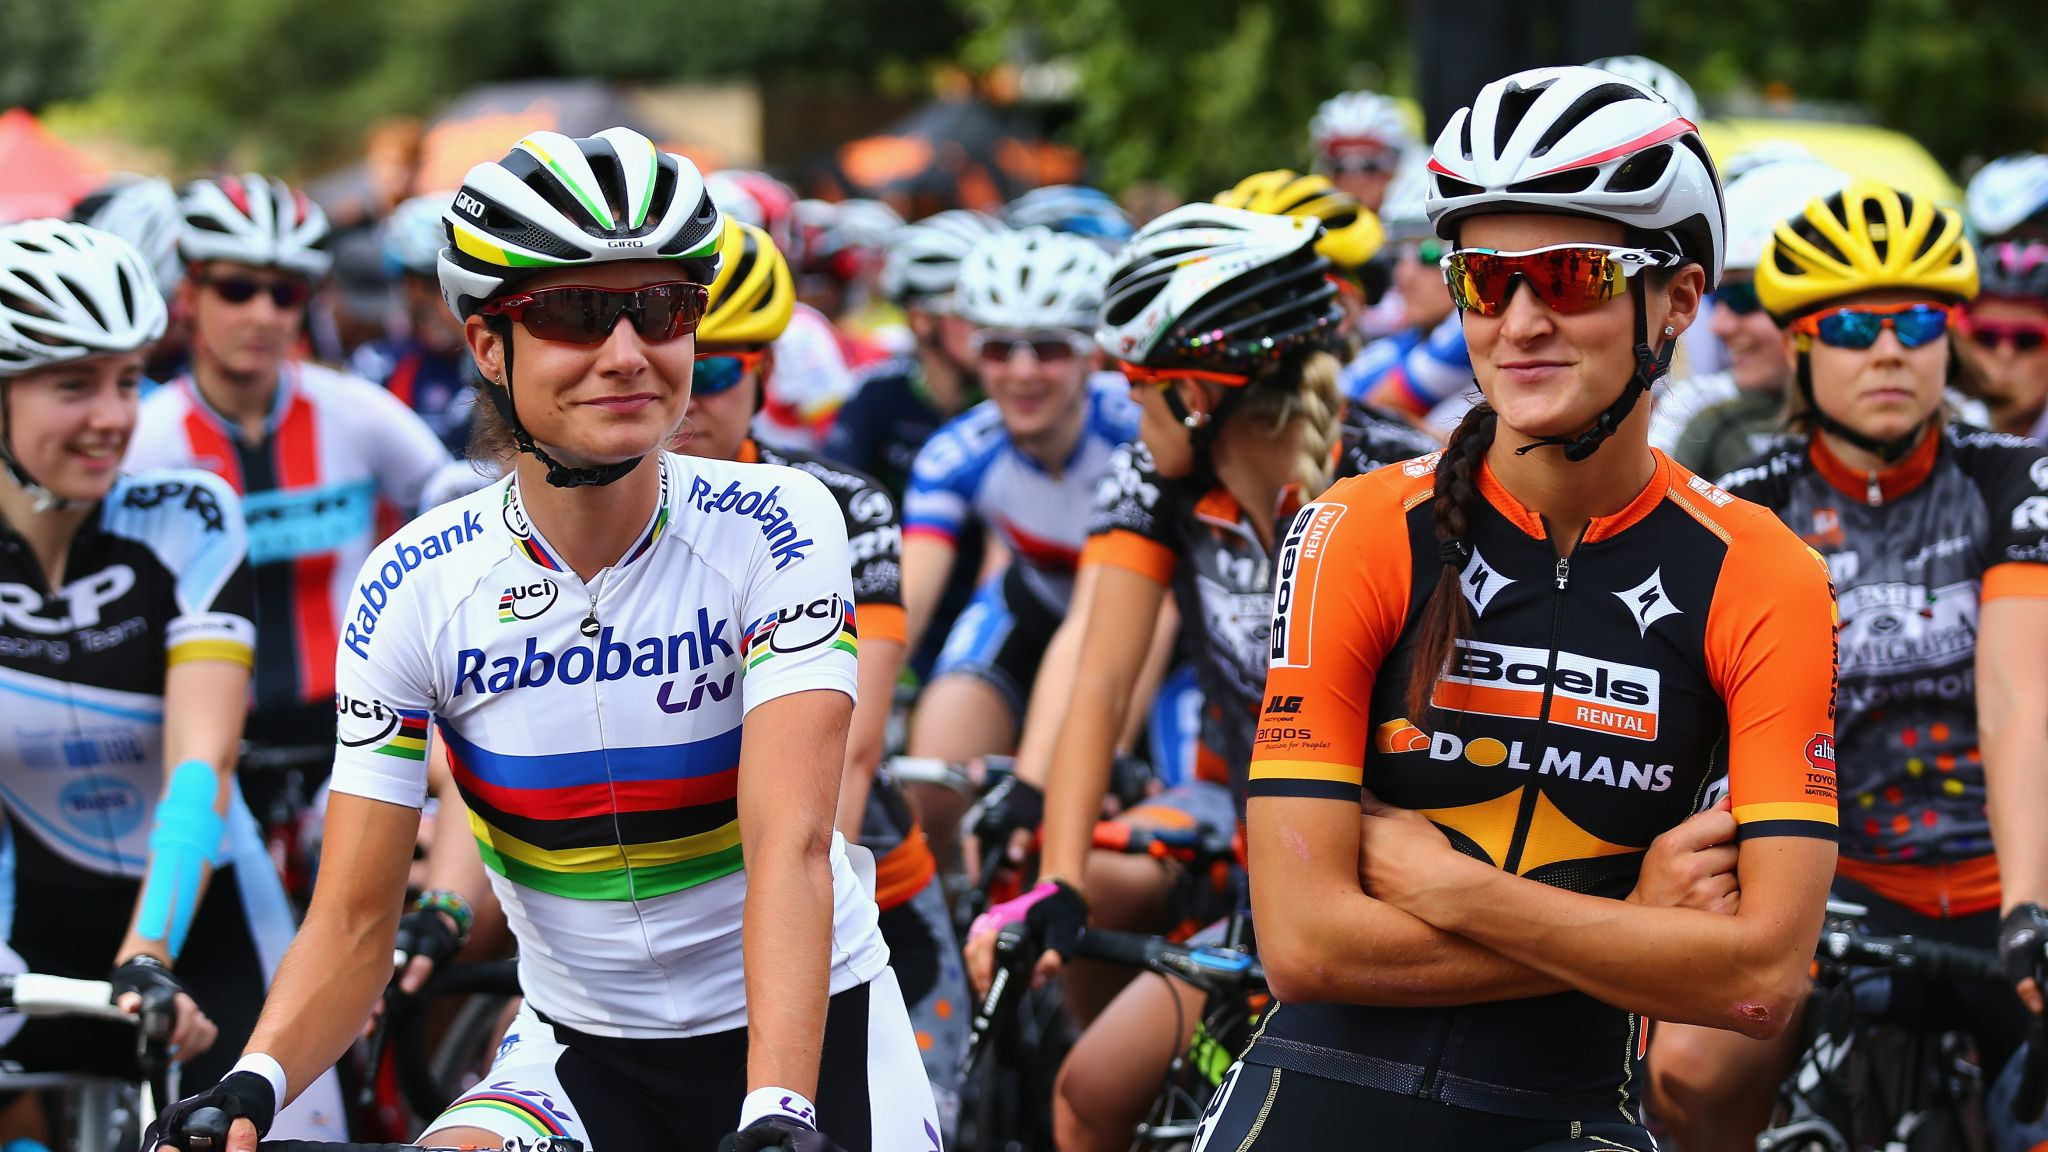 Marianne Vos says women's Tour of Britain shows potential of female cycling